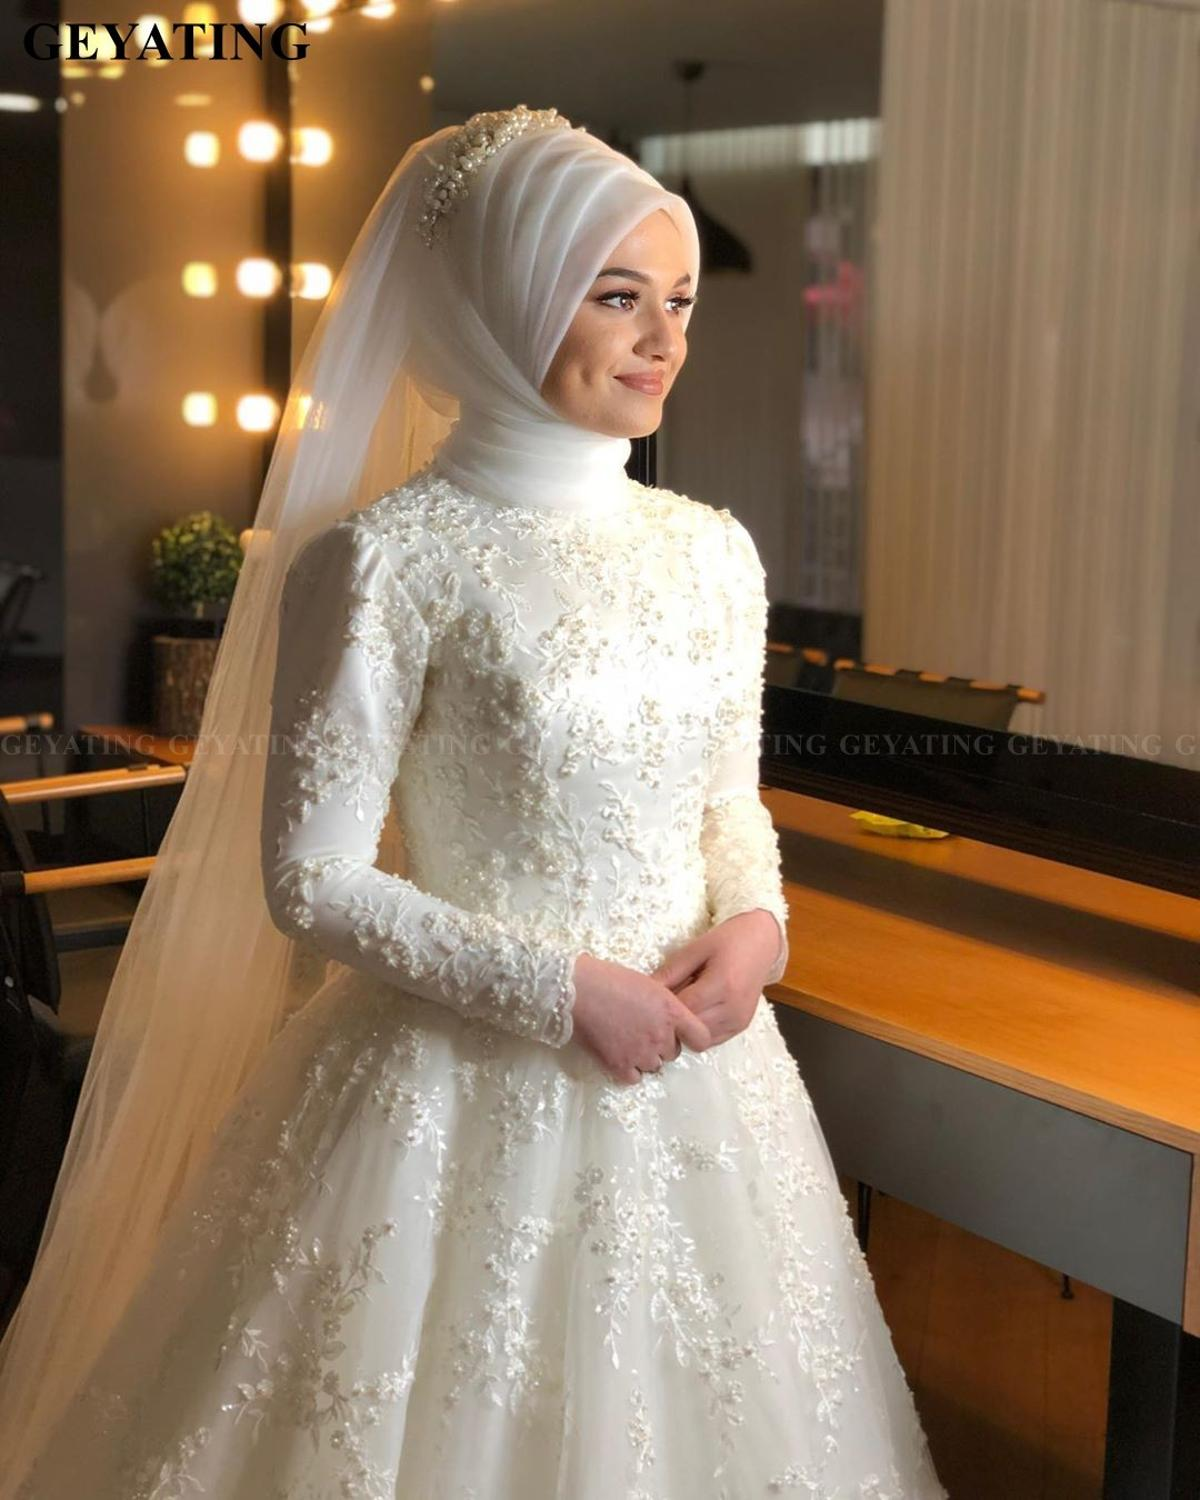 Image 2 - 2020 Elegant Off White Islamic Muslim Wedding Dress with Hijab Long Sleeves High Neck Pearls Lace Arabic Bridal Gowns in Dubai-in Wedding Dresses from Weddings & Events